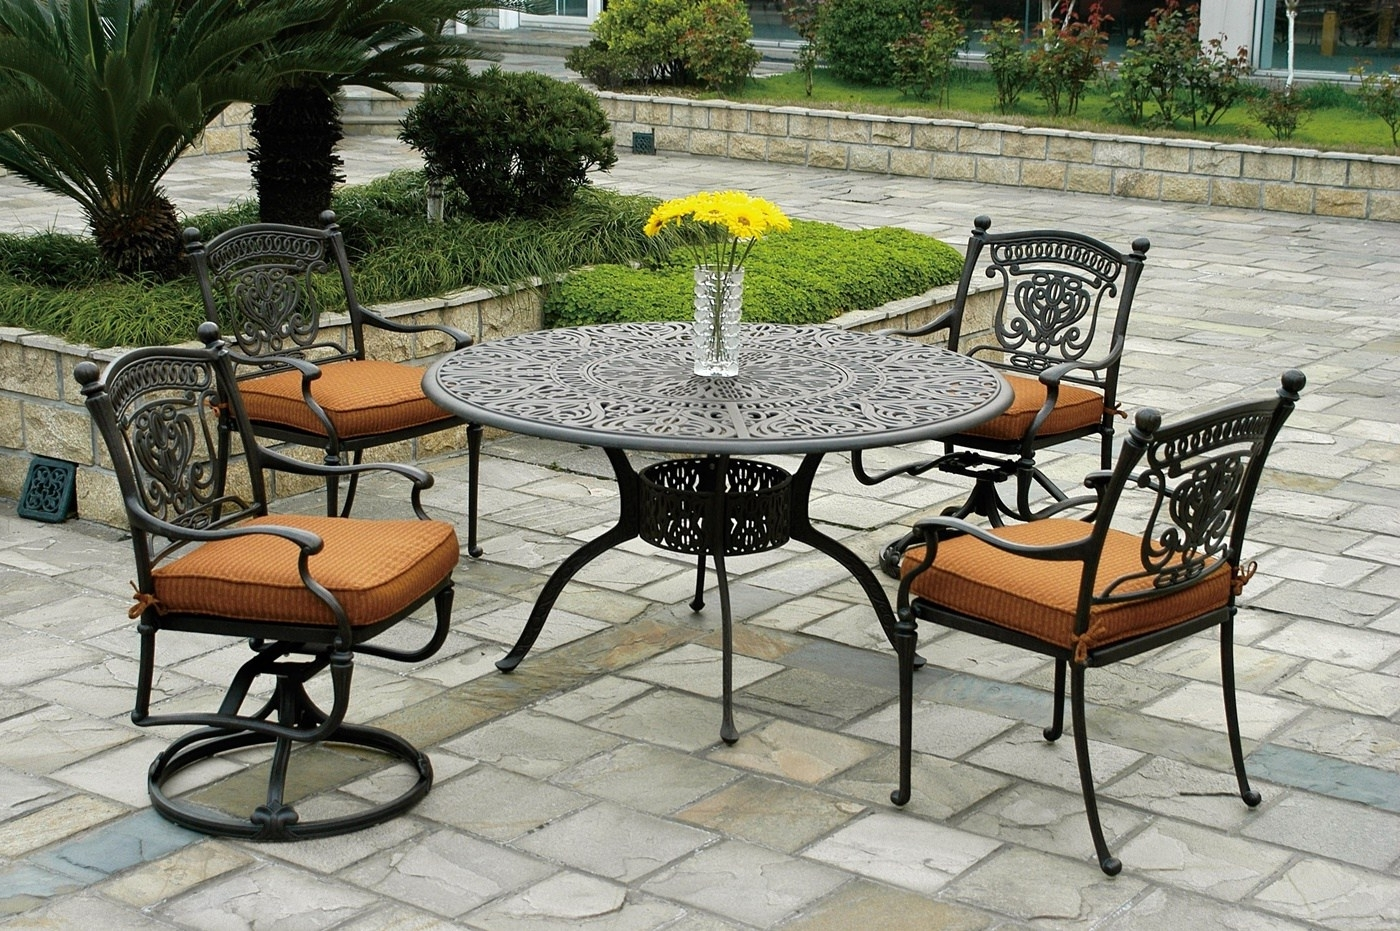 Patio Furniture Sets With Umbrellas Regarding Popular Gray Outdoor Table With Large Size With Chairs Small (View 13 of 20)